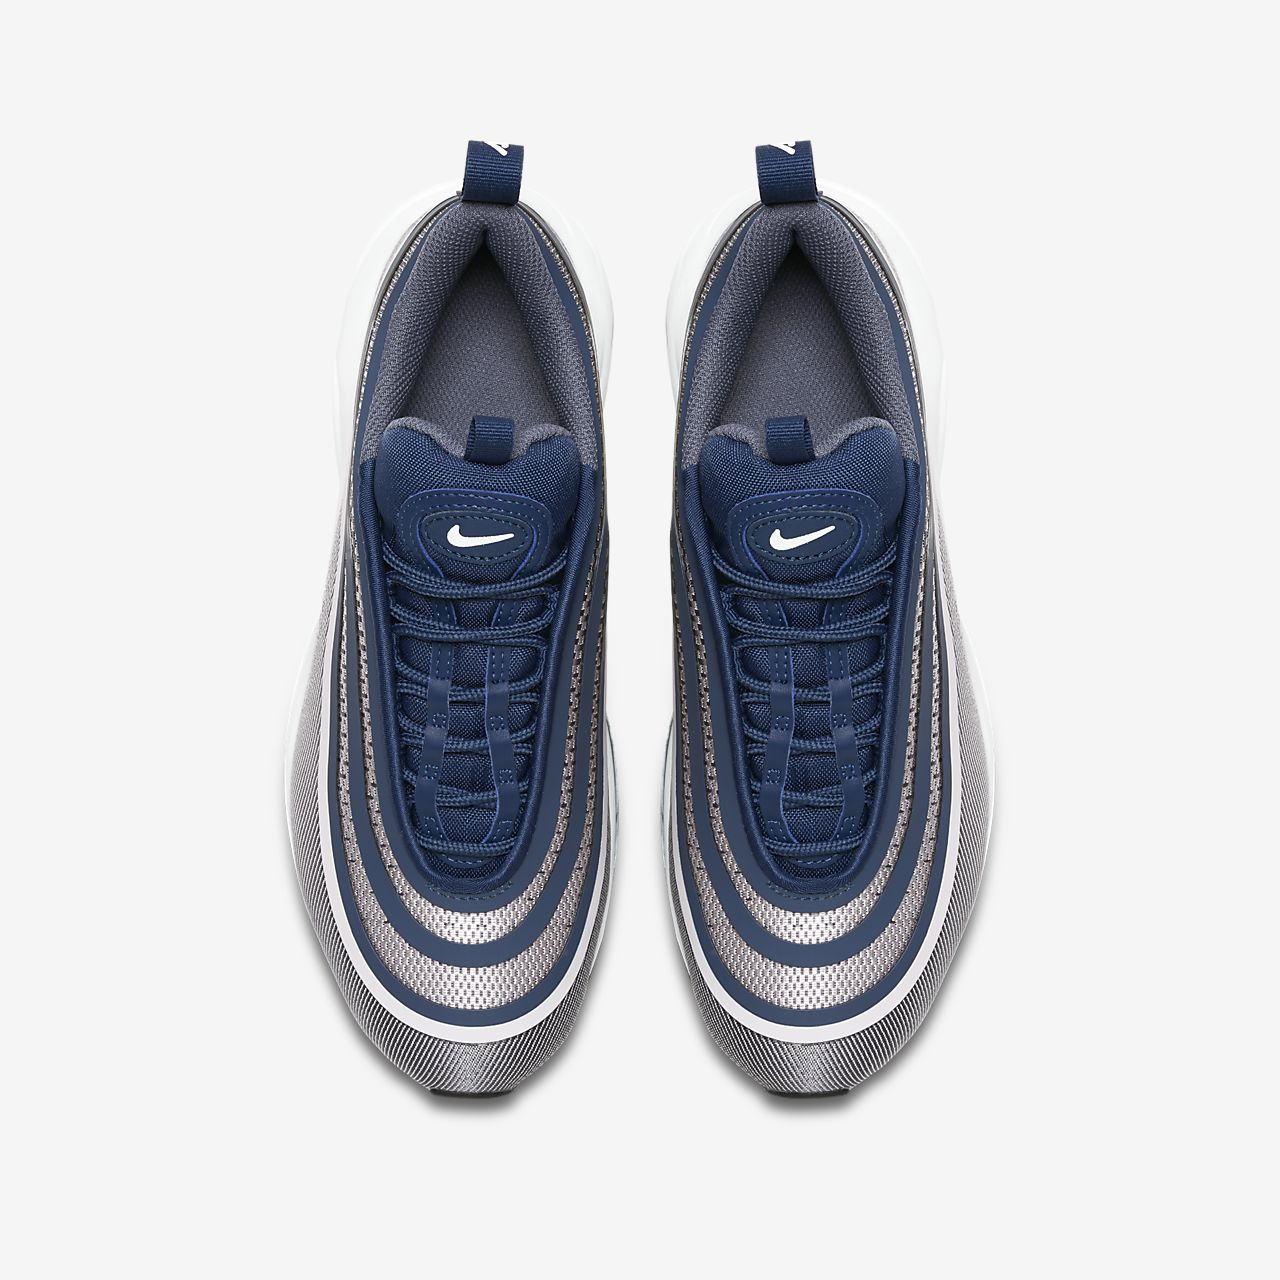 shoes men nike air max 97 nz